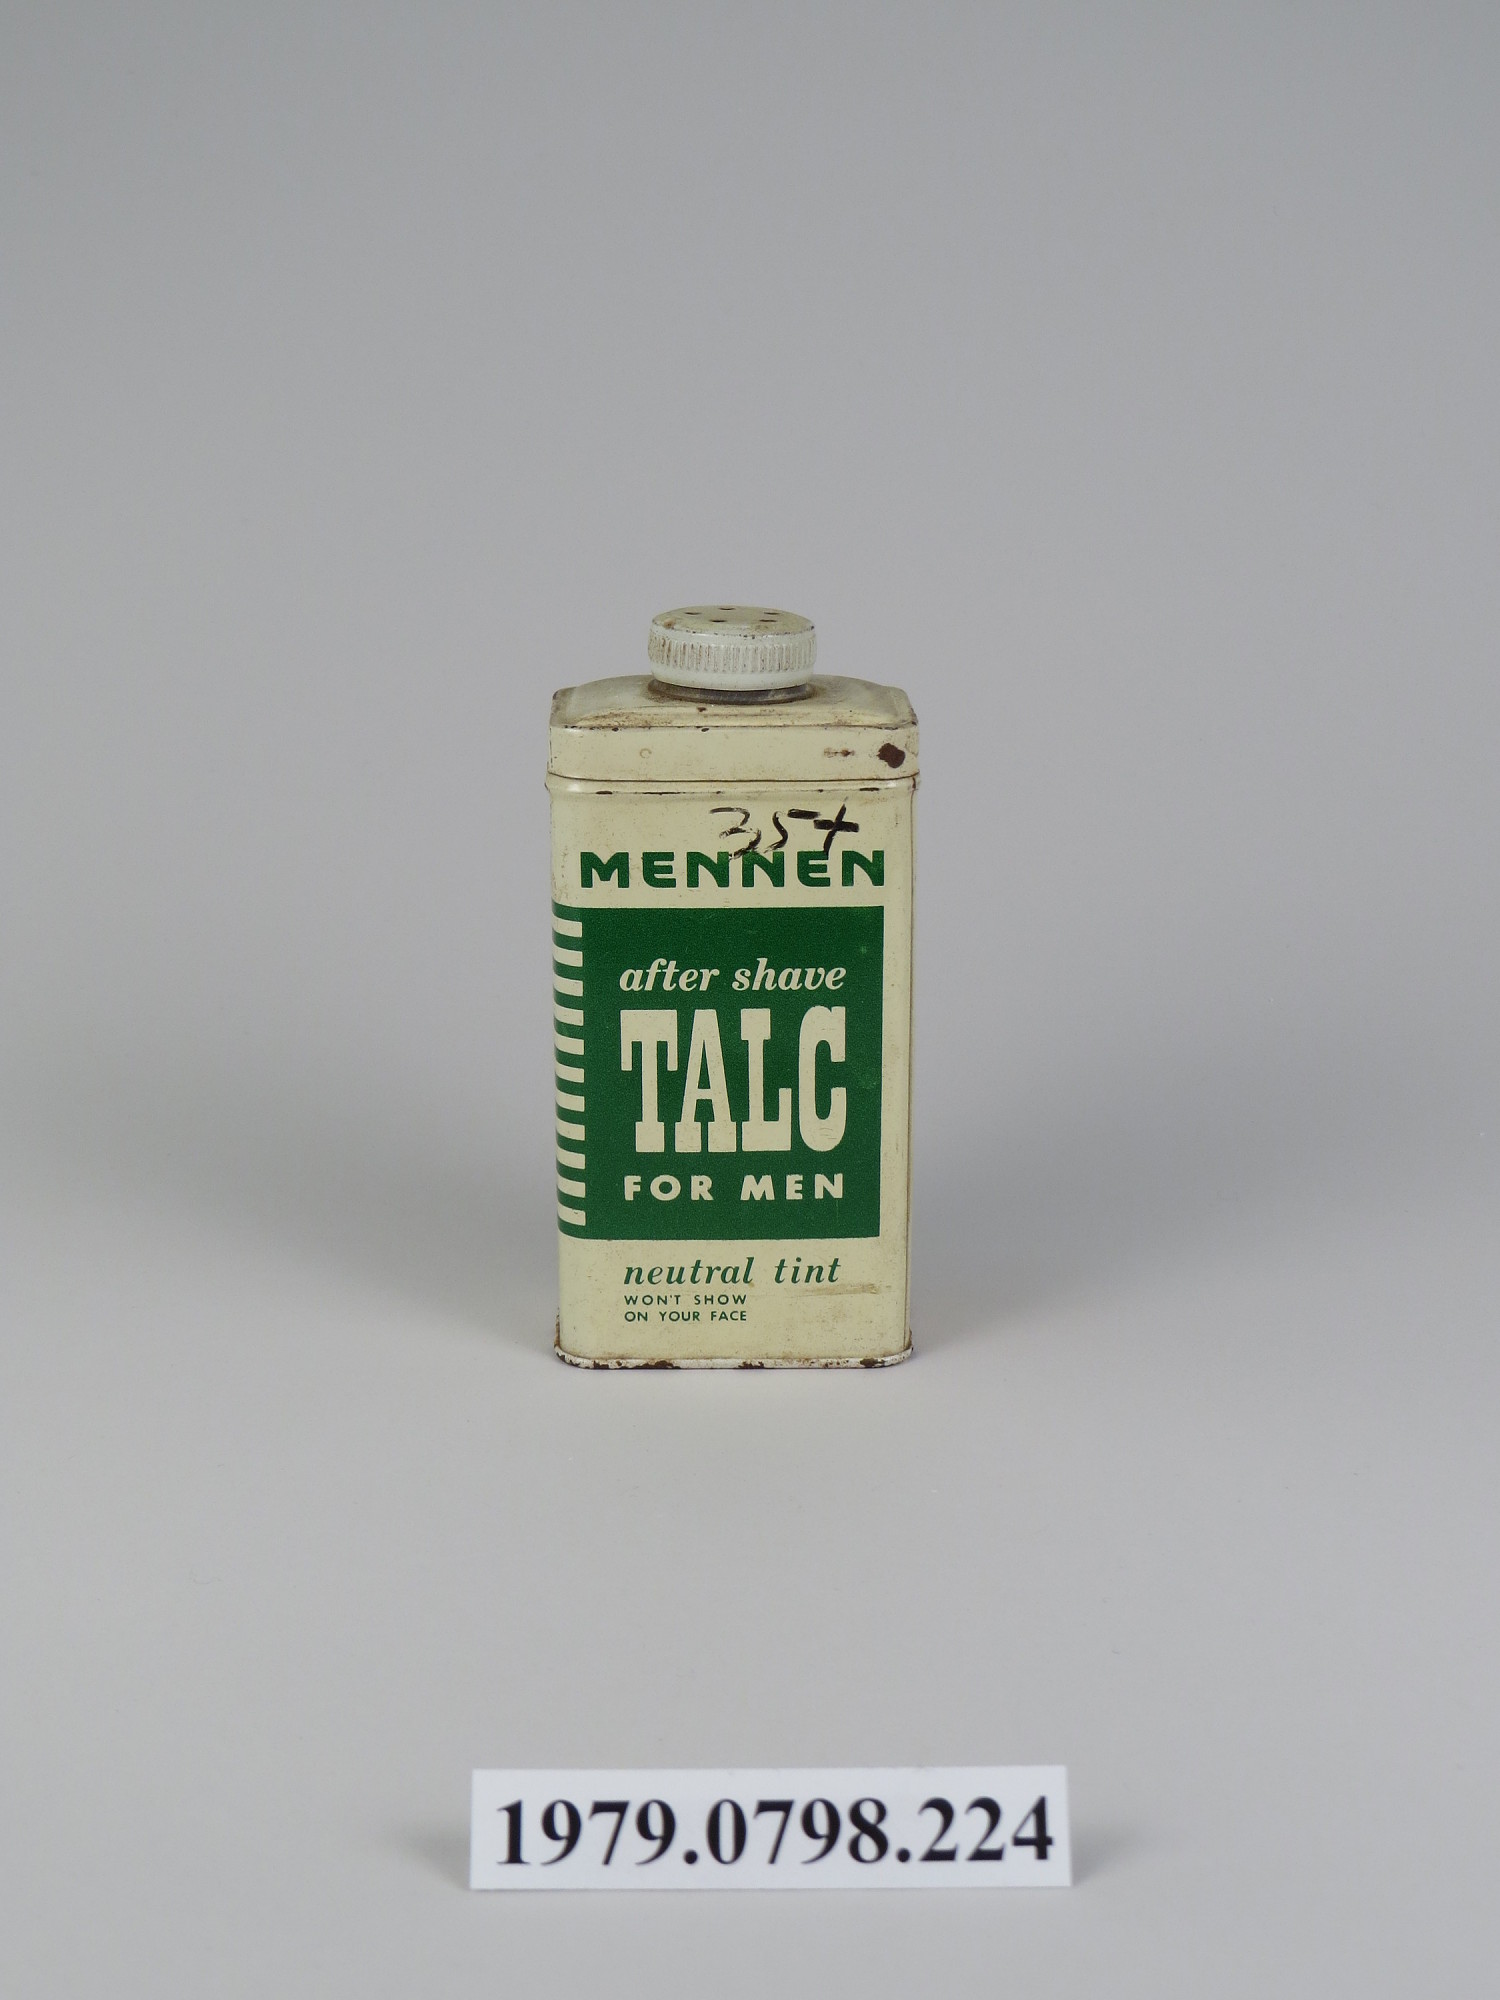 Completely new Mennen After Shave Talc for Men | National Museum of American History CU68